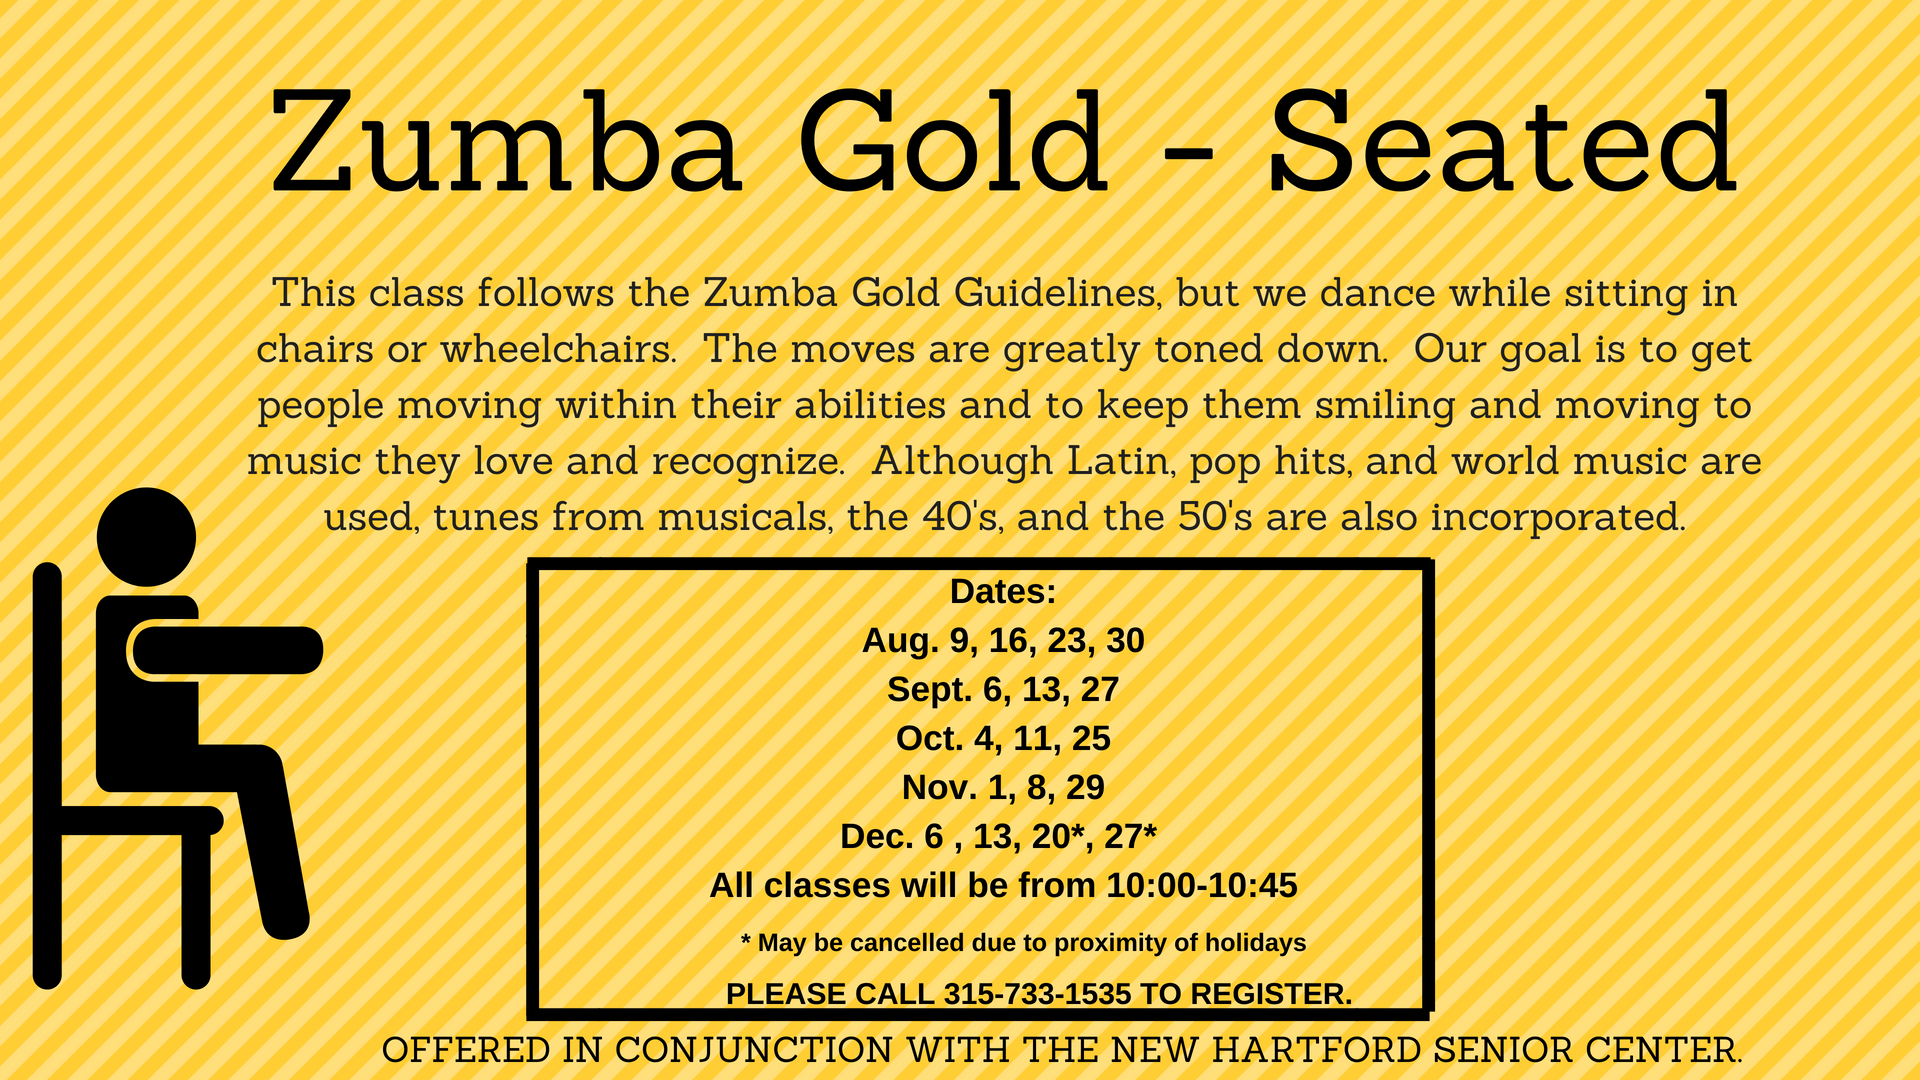 Zumba Gold Seated 1000 1045 New Hartford Public Library